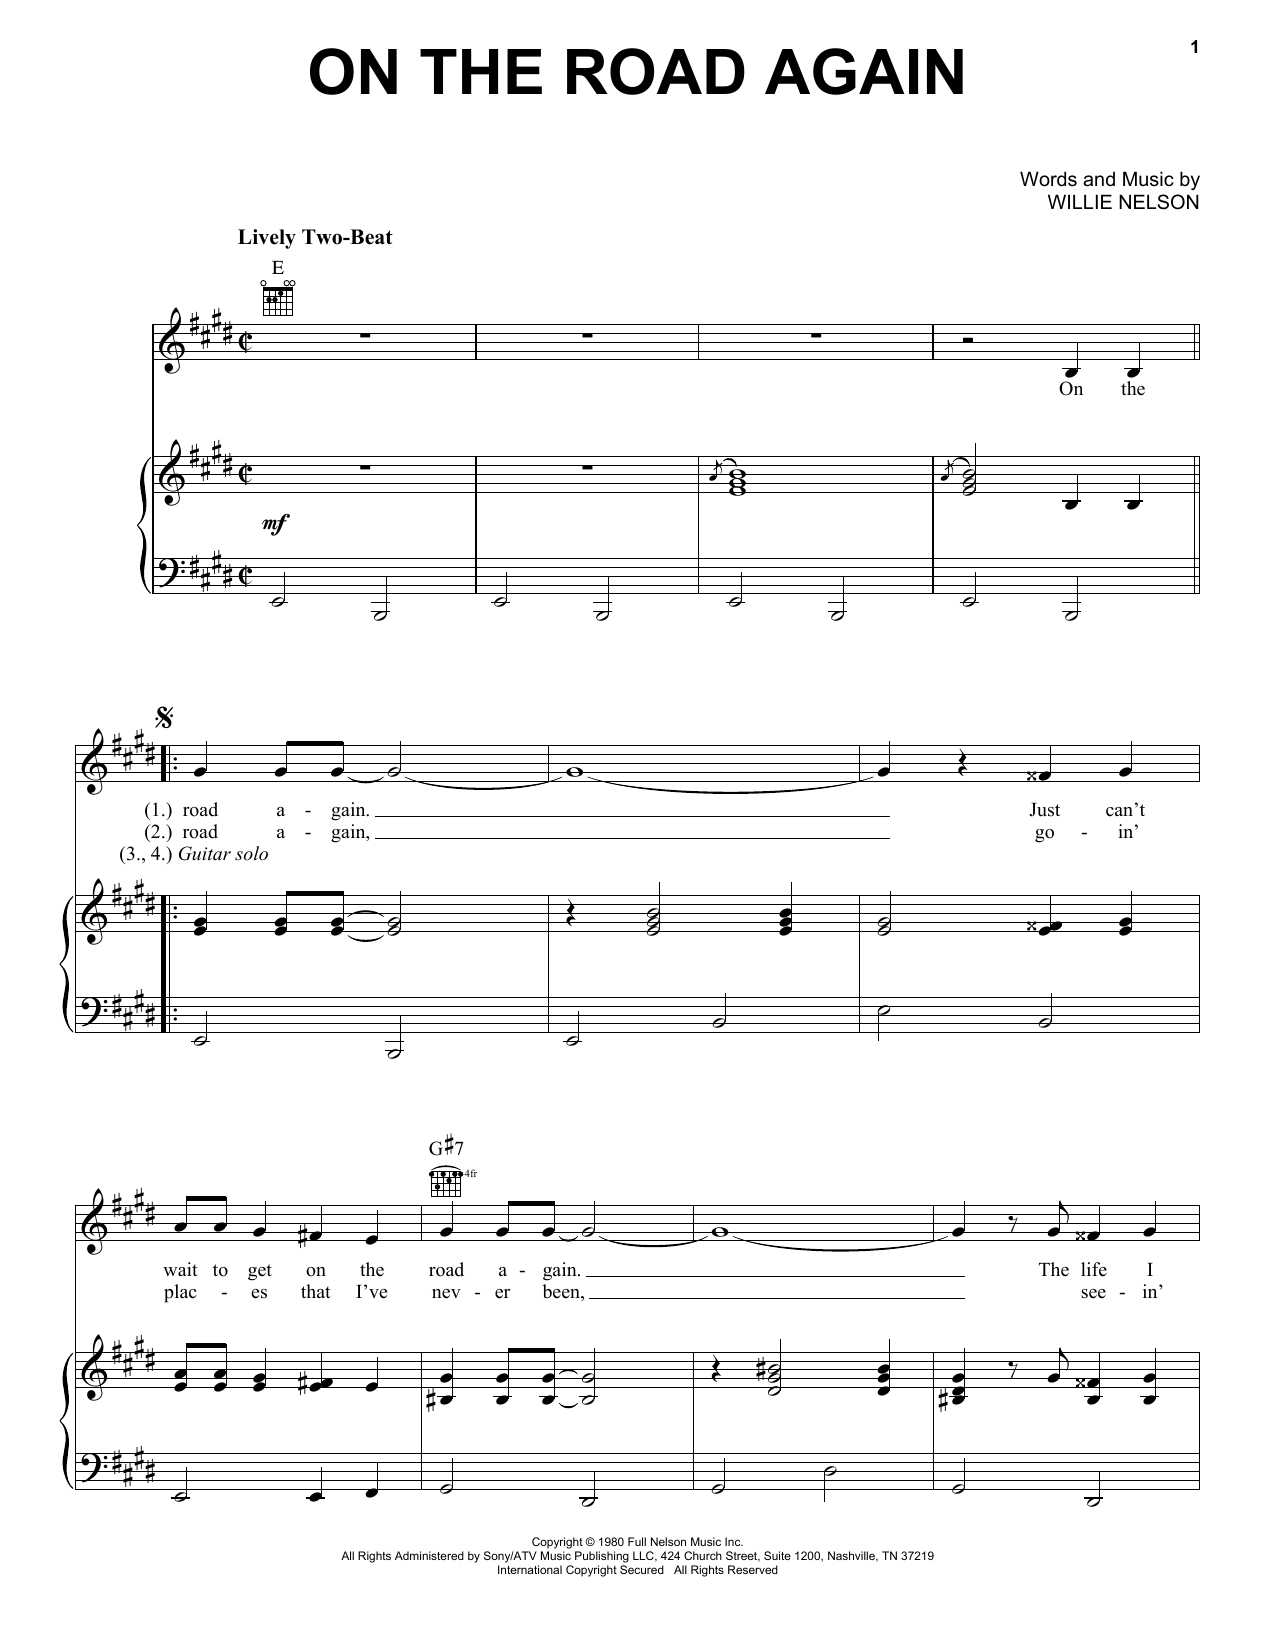 Willie Nelson 'On The Road Again' Sheet Music Notes, Chords | Download  Printable Guitar Tab - SKU: 83099